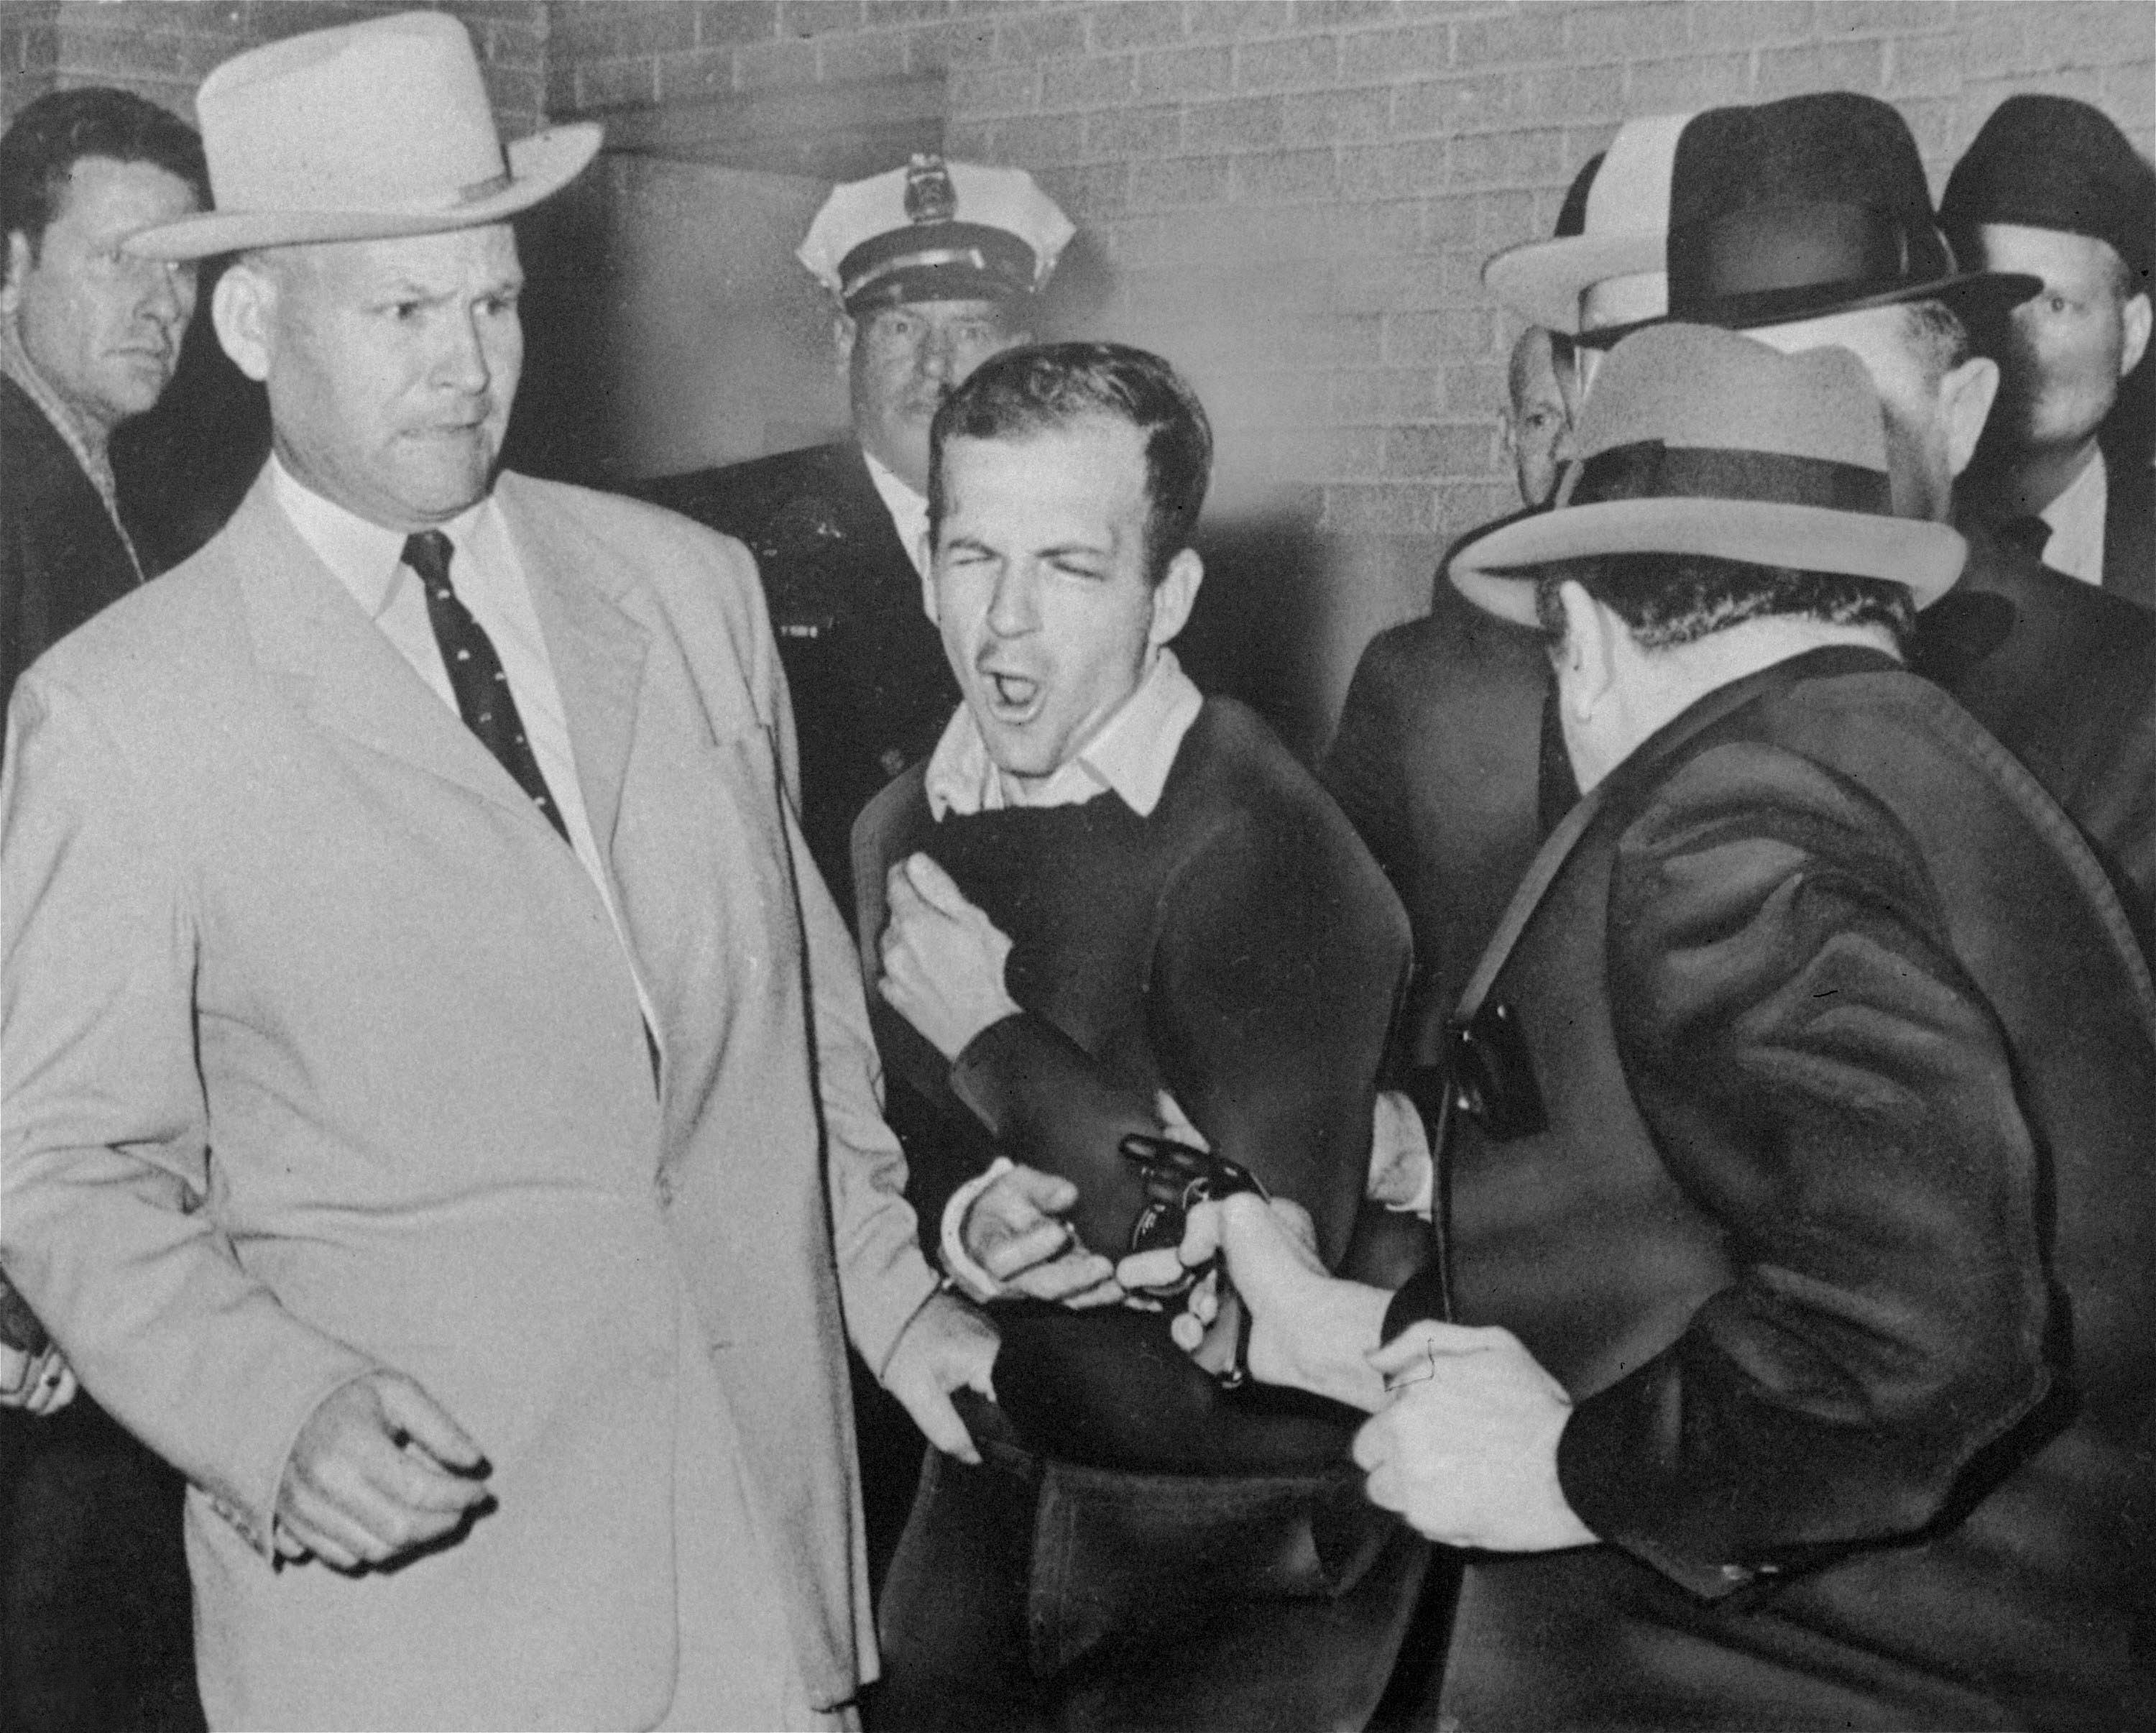 Detective who was handcuffed to Lee Harvey Oswald dies at 99